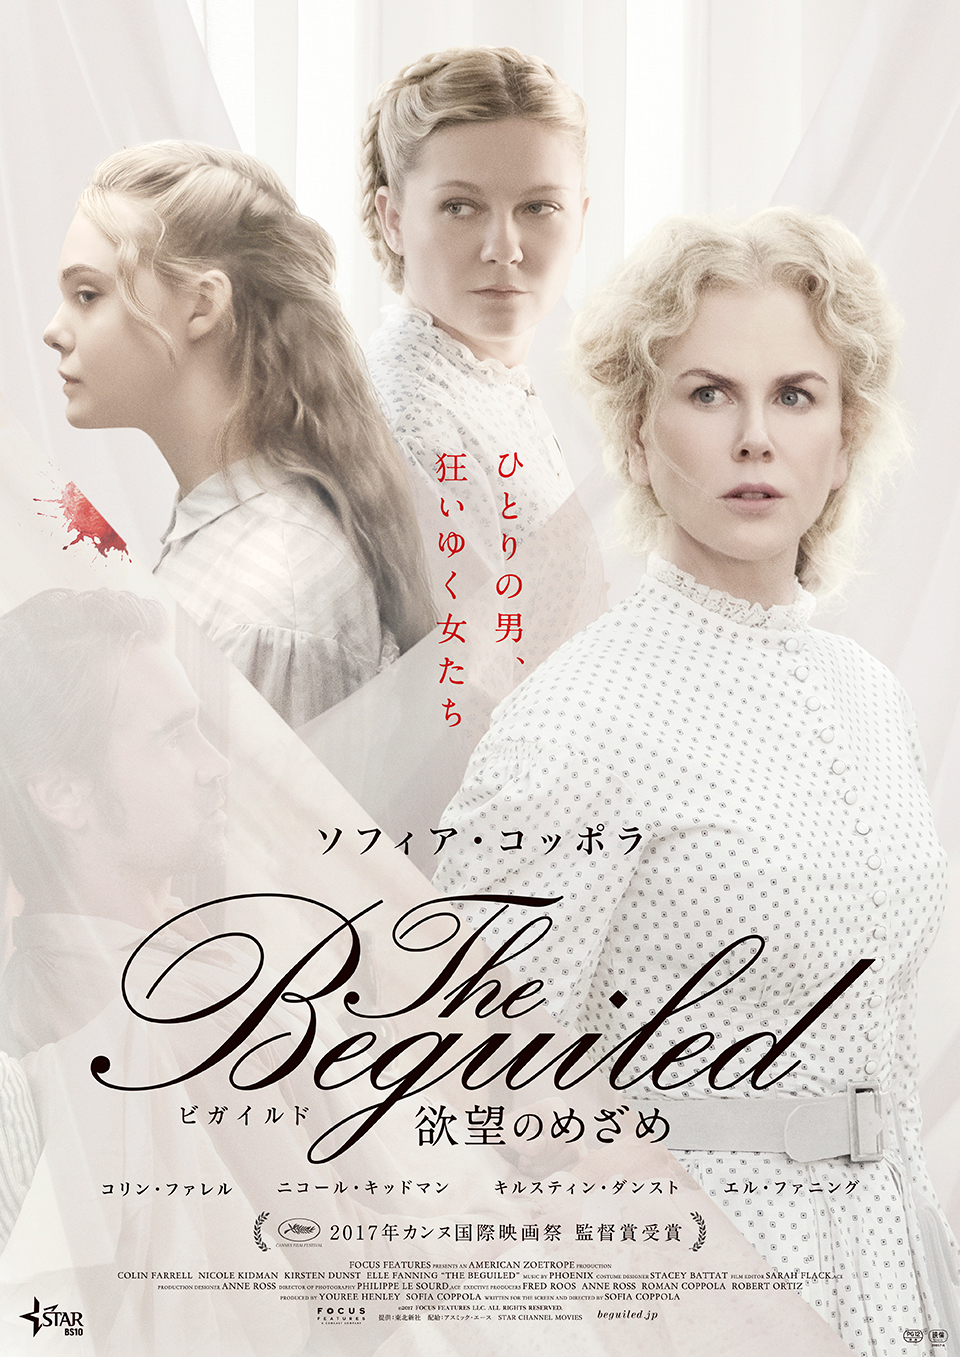 『The Beguiled/ビガイルド 欲望のめざめ』第2弾ポスター